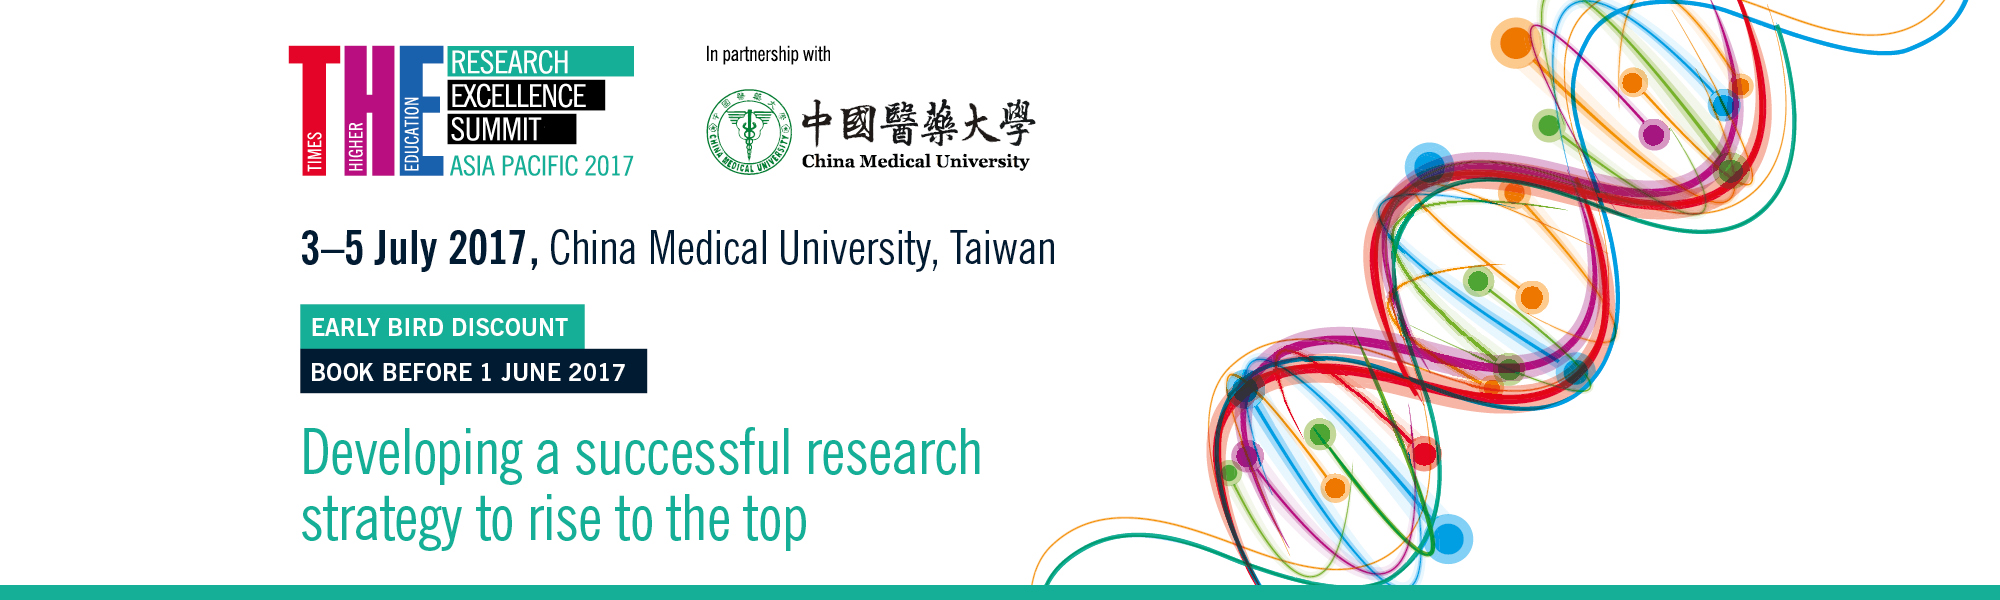 THE Research Excellence Summit 2017